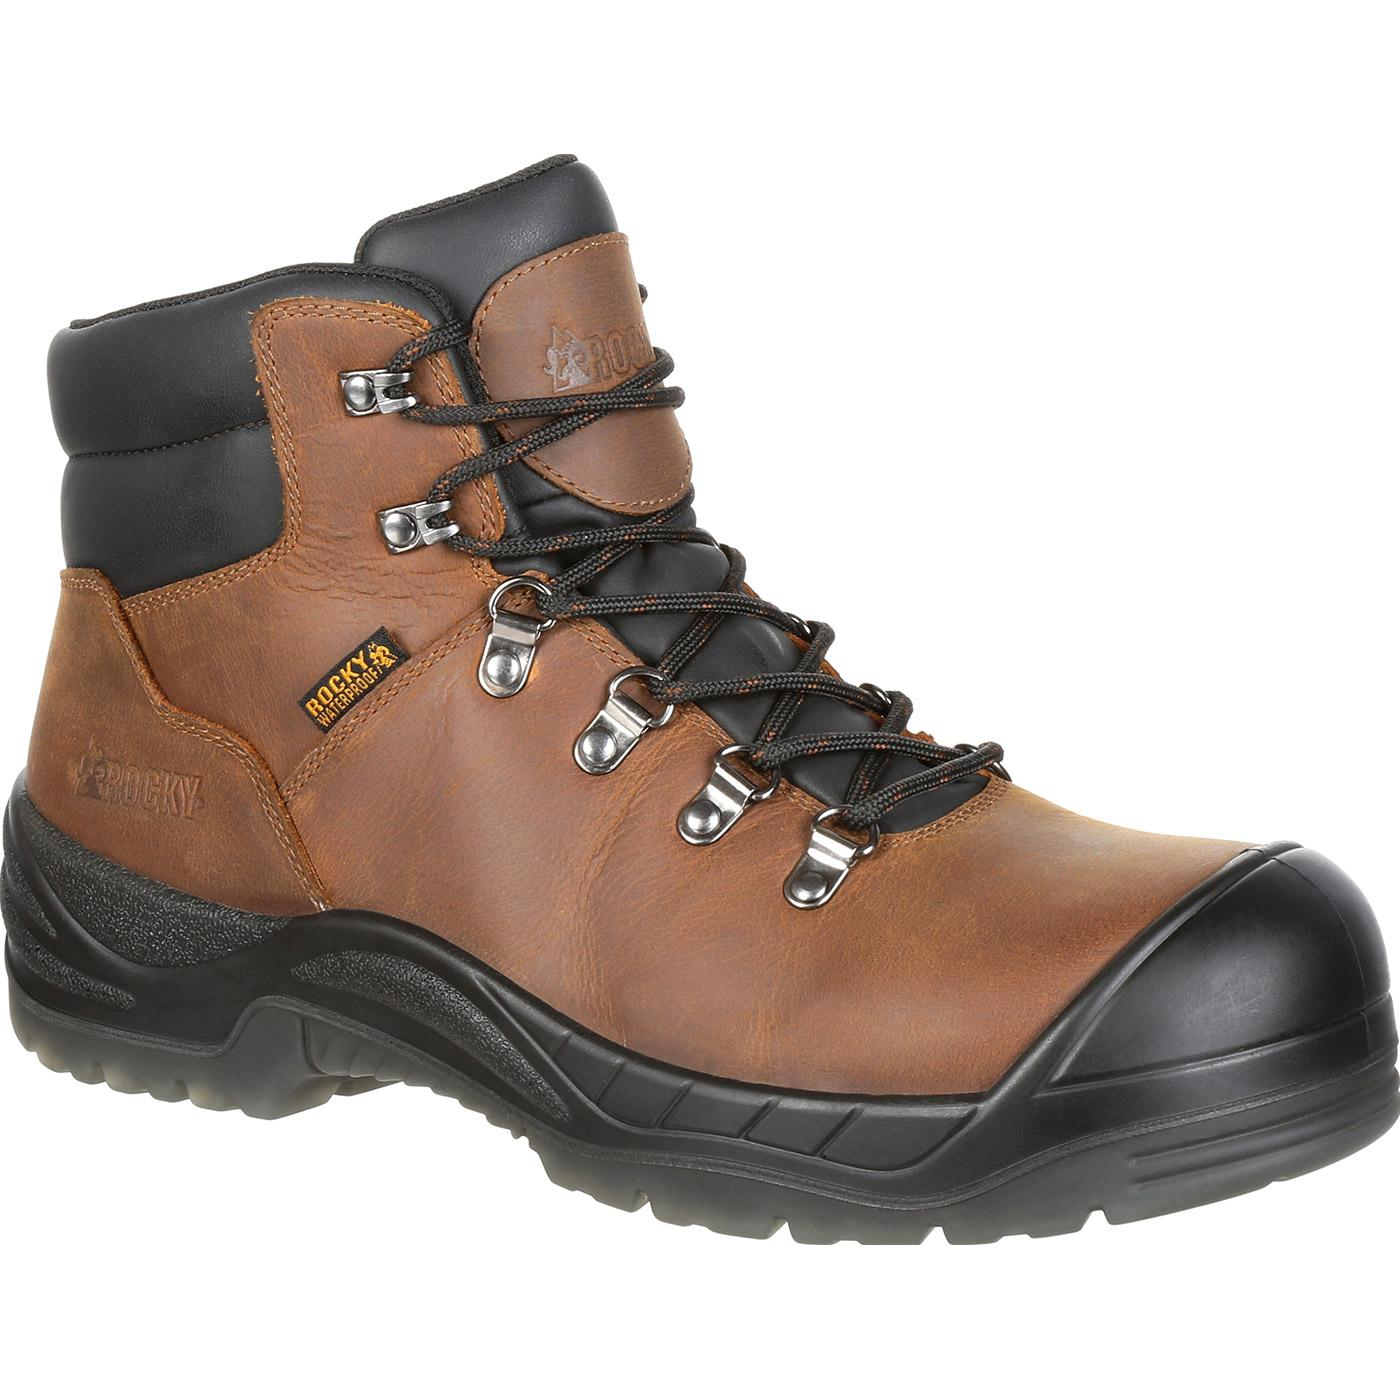 Rocky - Worksmart Composite Toe Waterproof Work Boot-